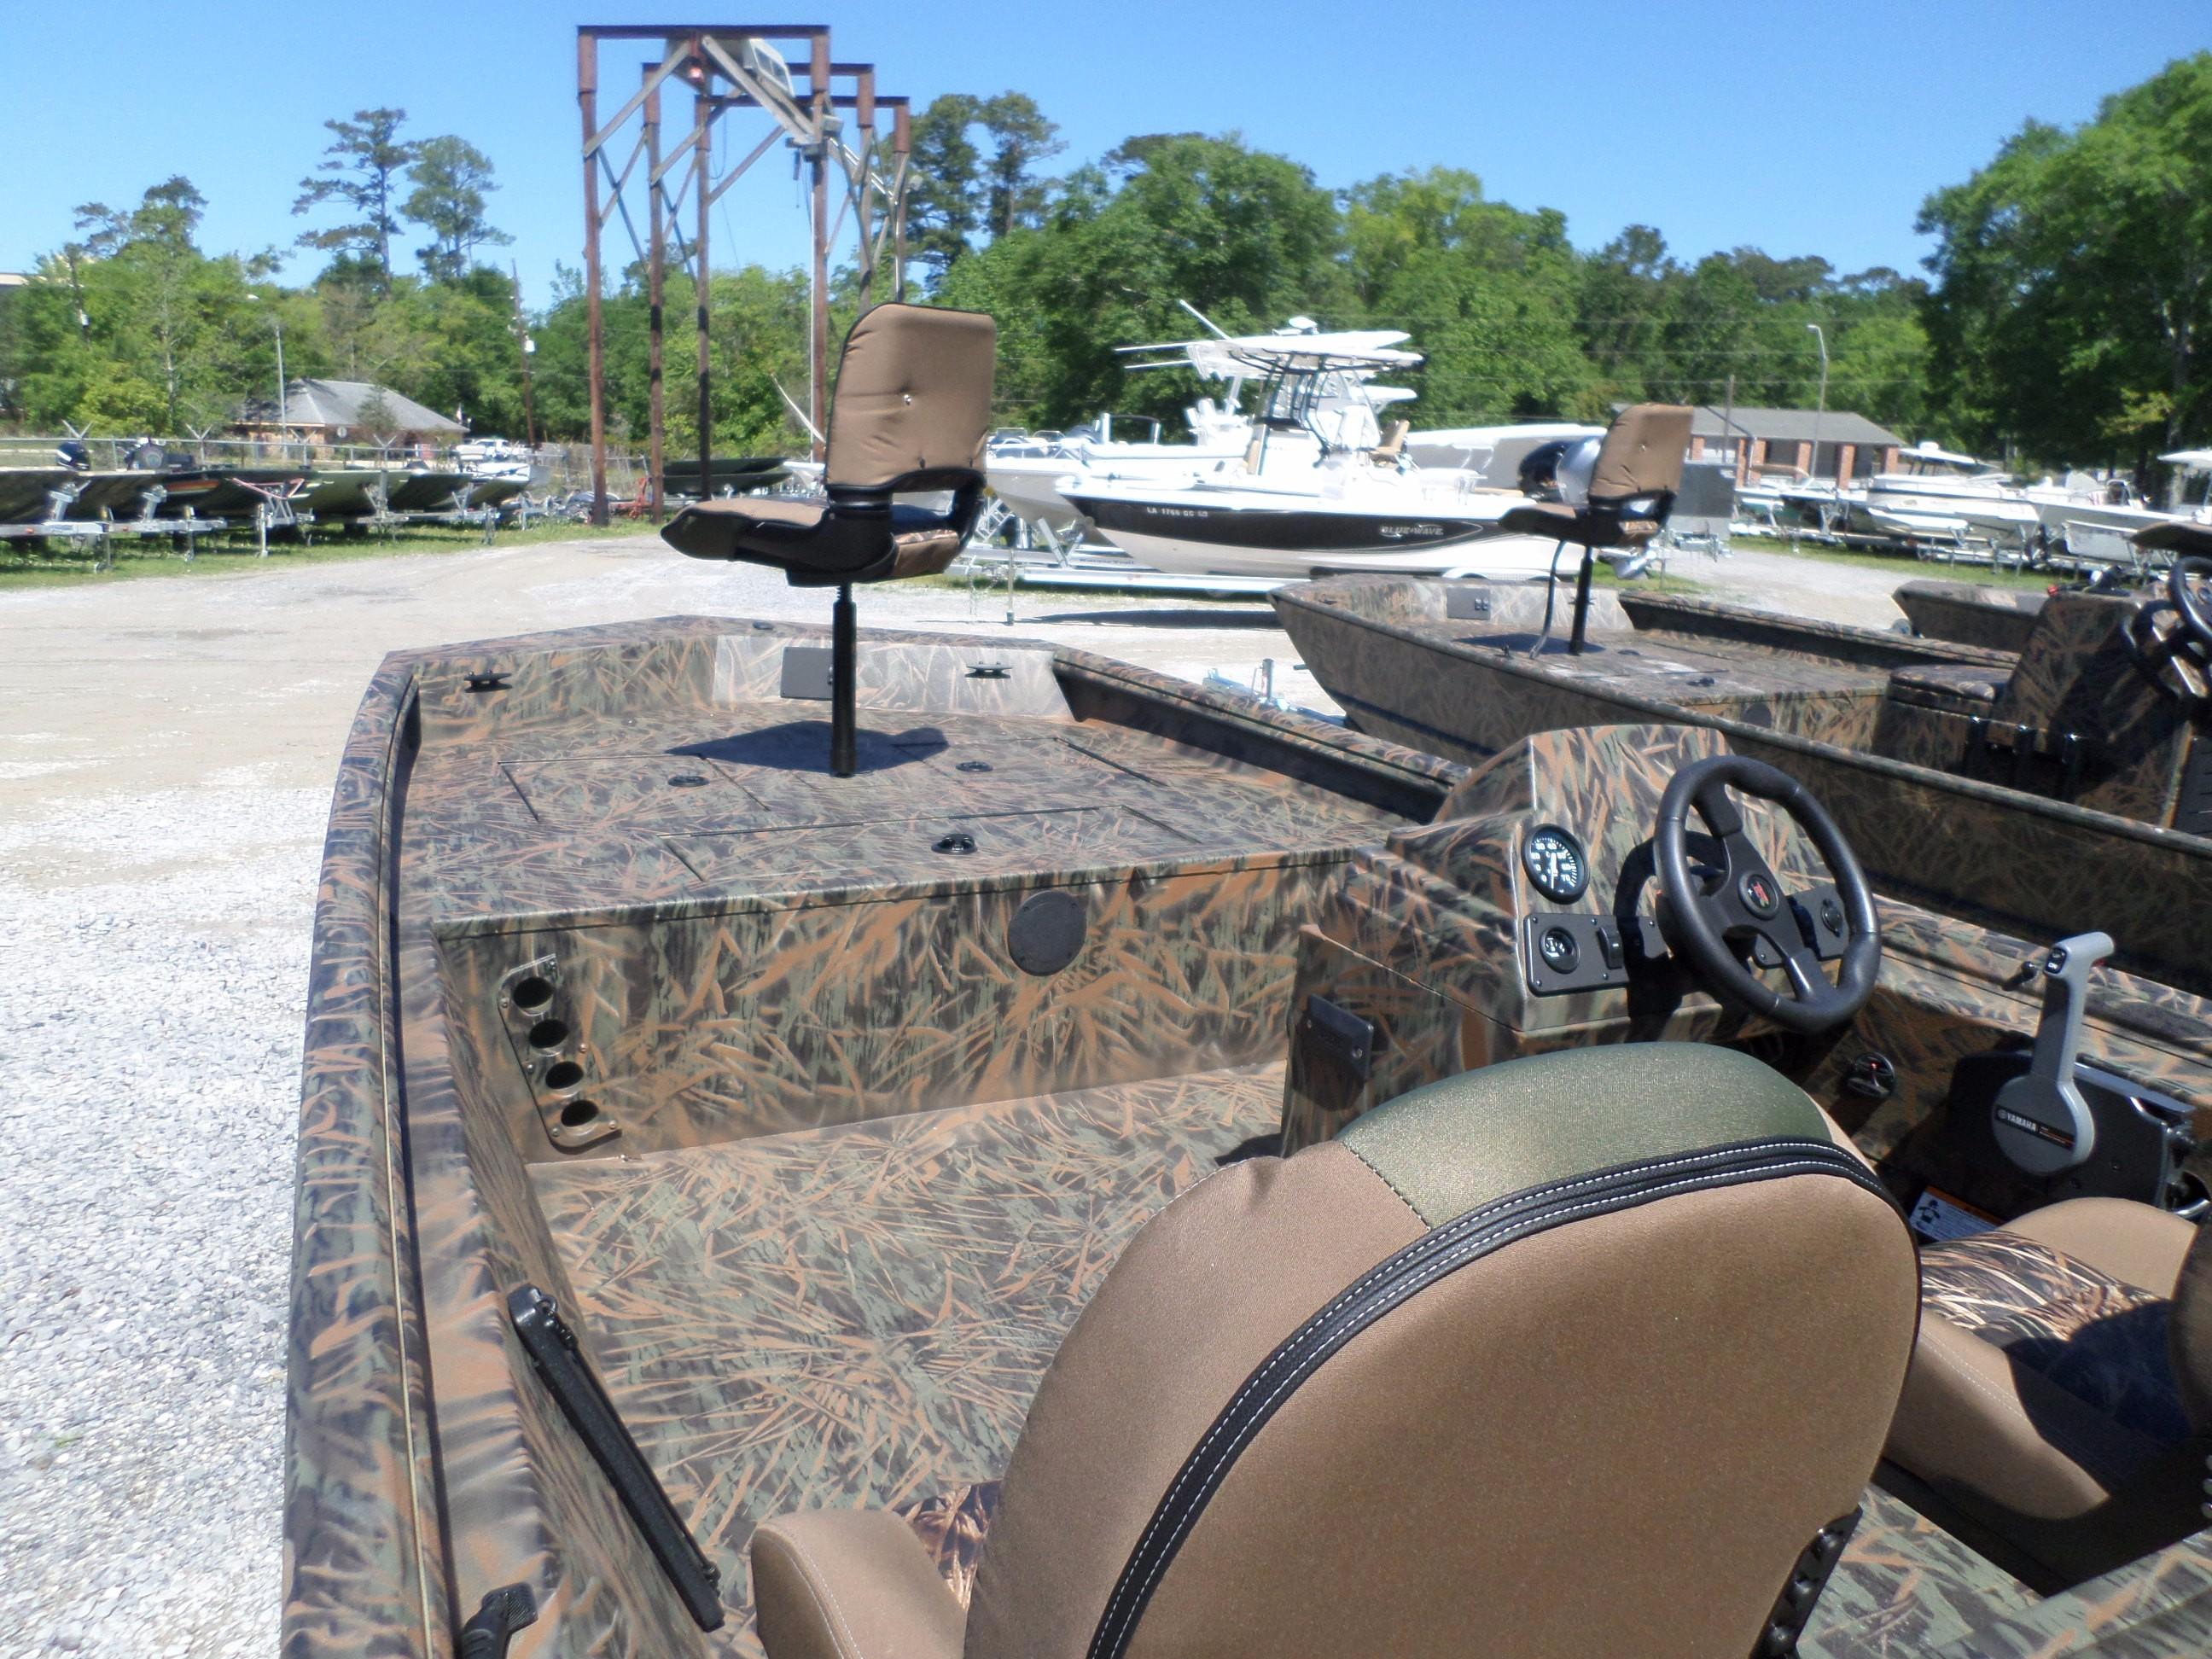 New  2018 17.5' Ranger 1760 MPV Aluminum Fish Boat in Slidell, Louisiana